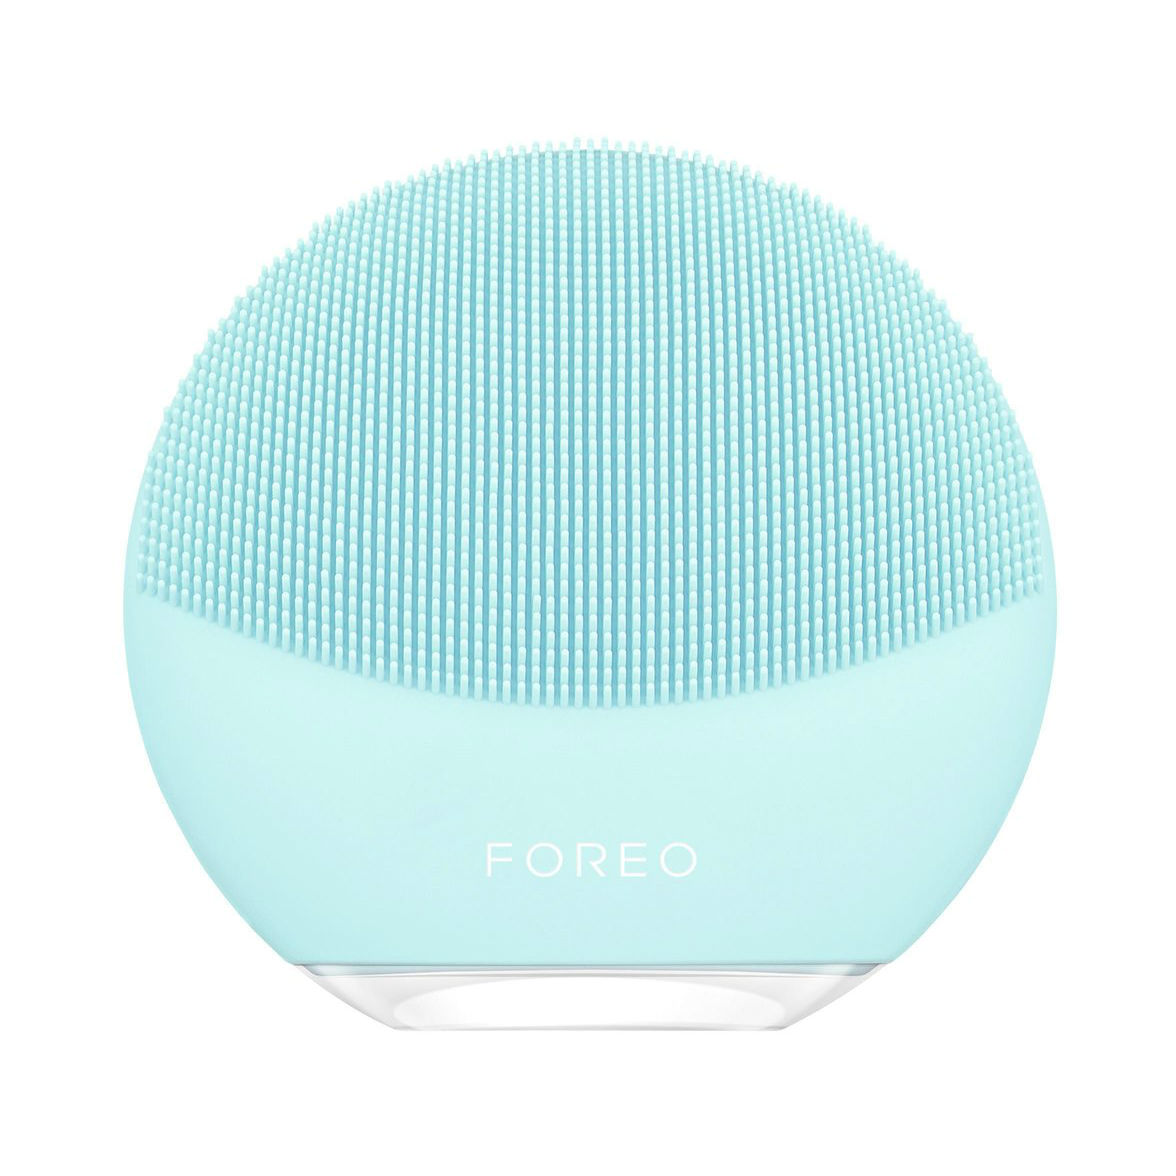 Image of Foreo Luna Mini 3 F9441 Facial Cleansing Brush - Mint